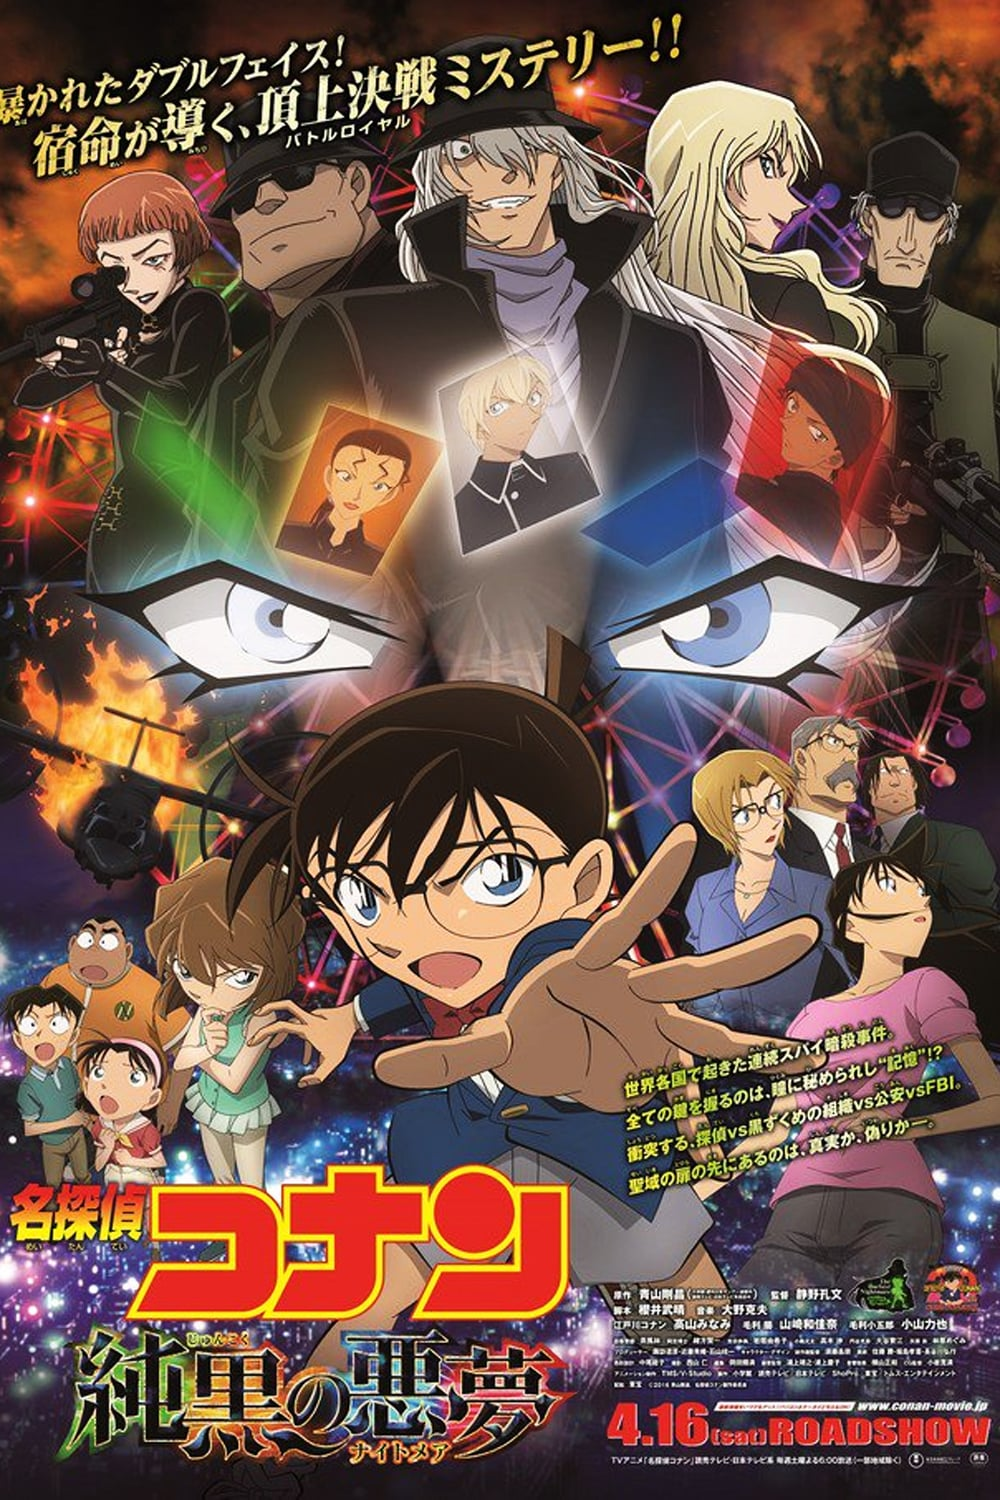 Watch Detective Conan movies on dimsum   The Star